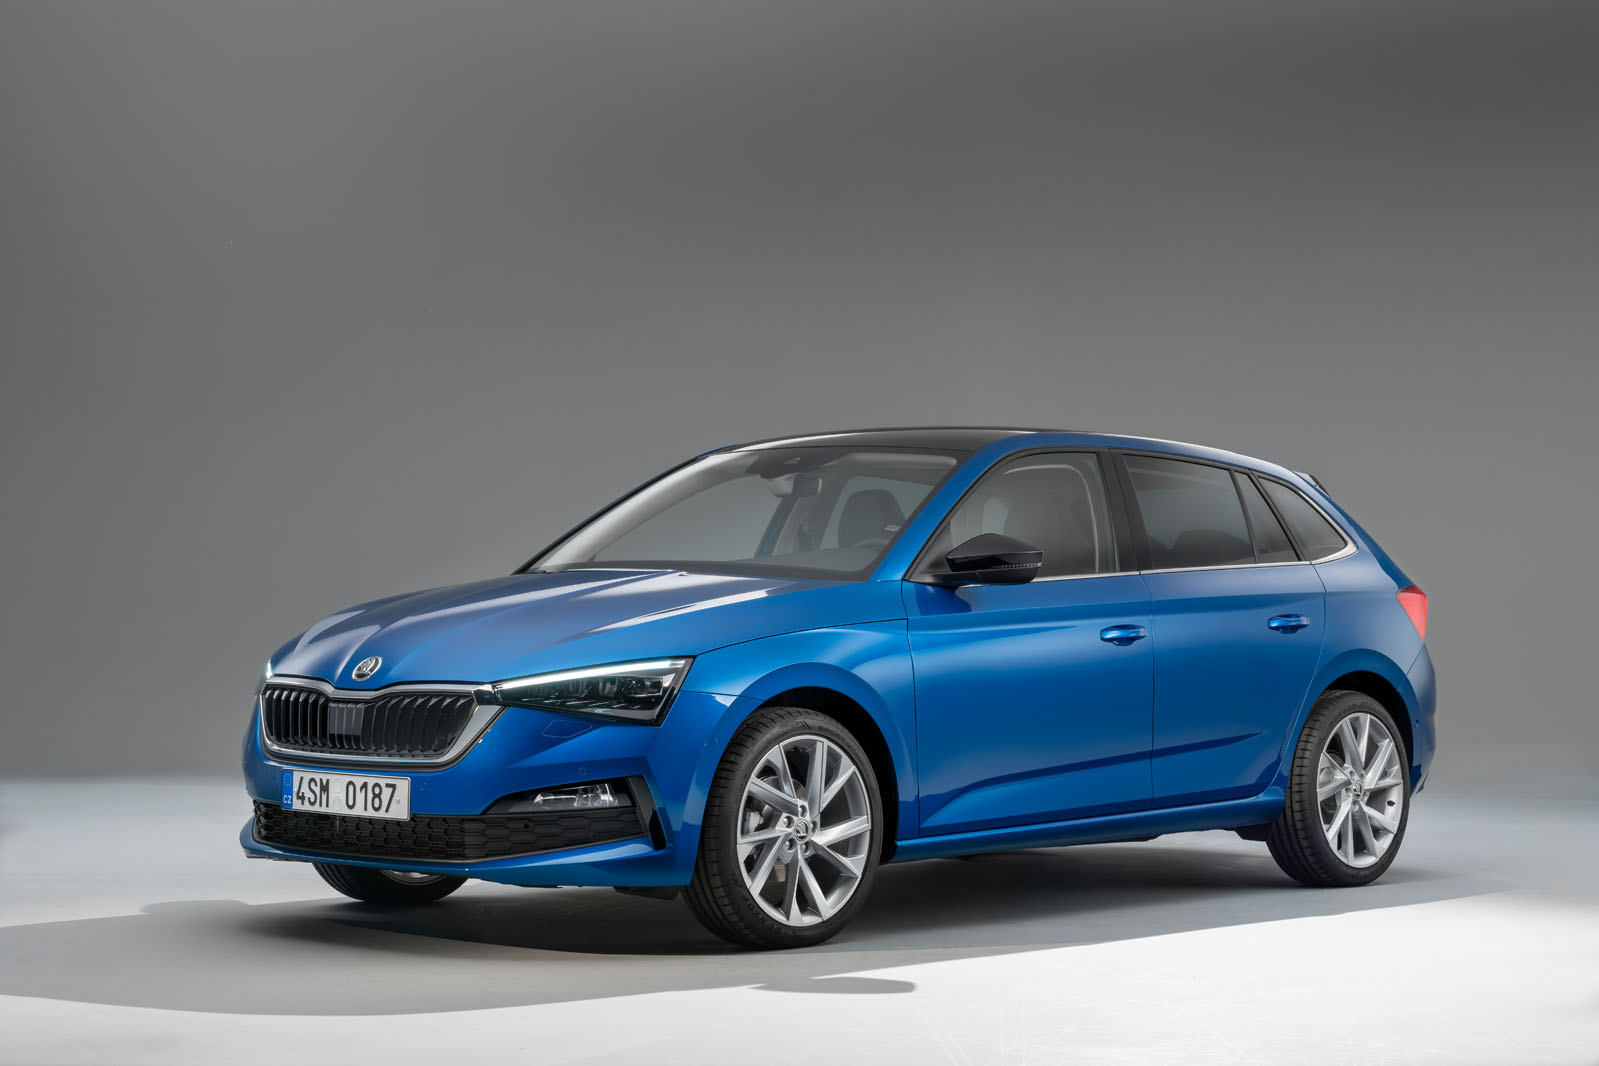 Skoda goes upscale with Scala compact hatchback